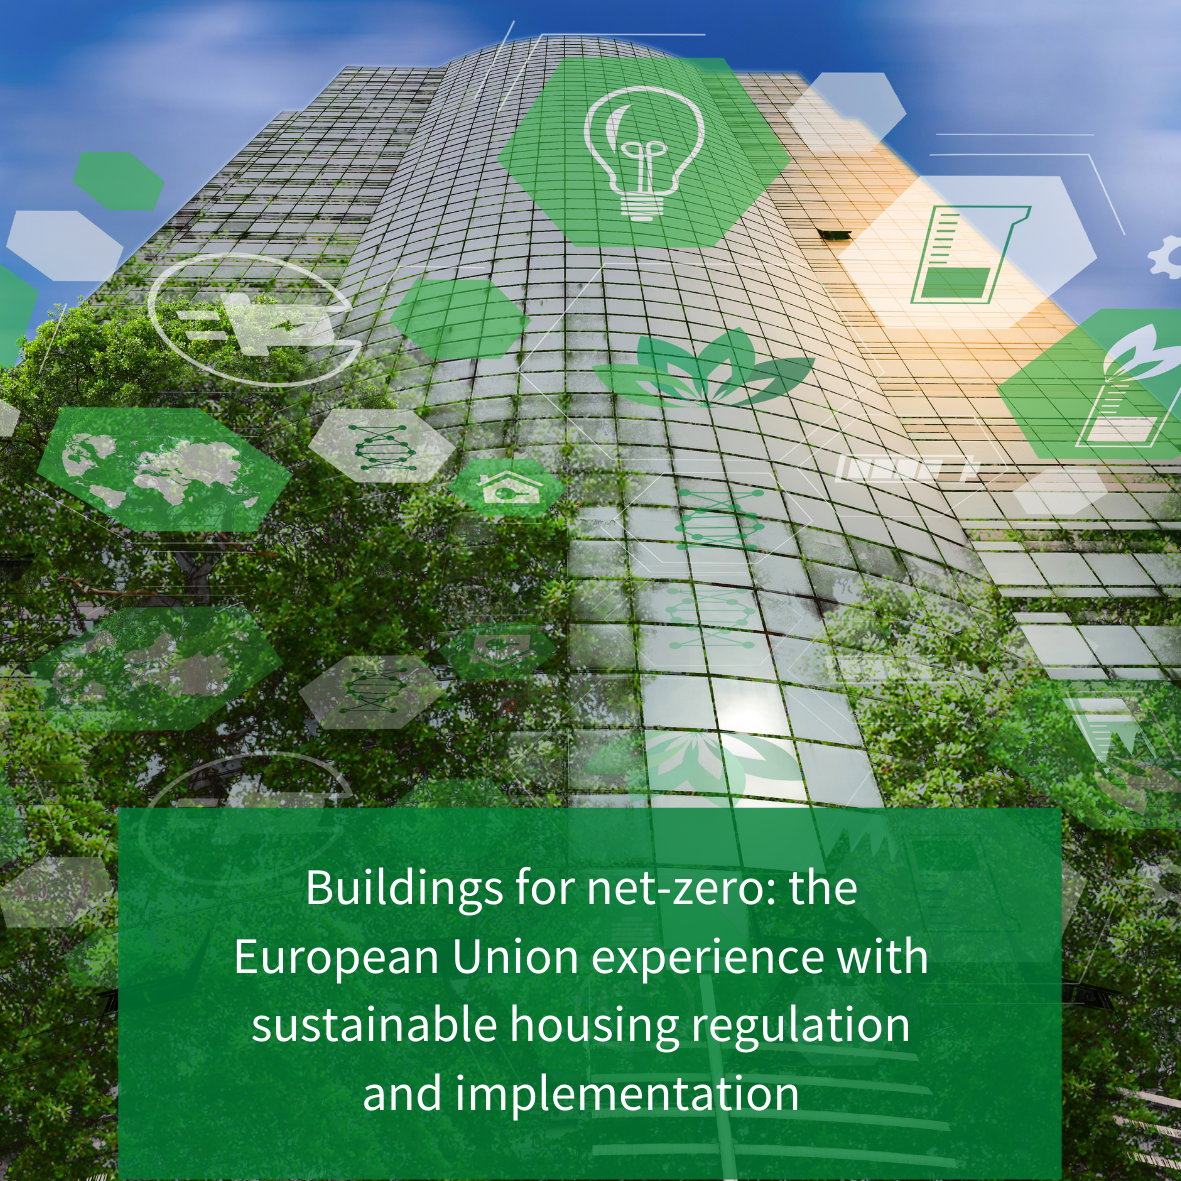 Buildings for net-zero: the European Union experience with sustainable housing regulation and implementation